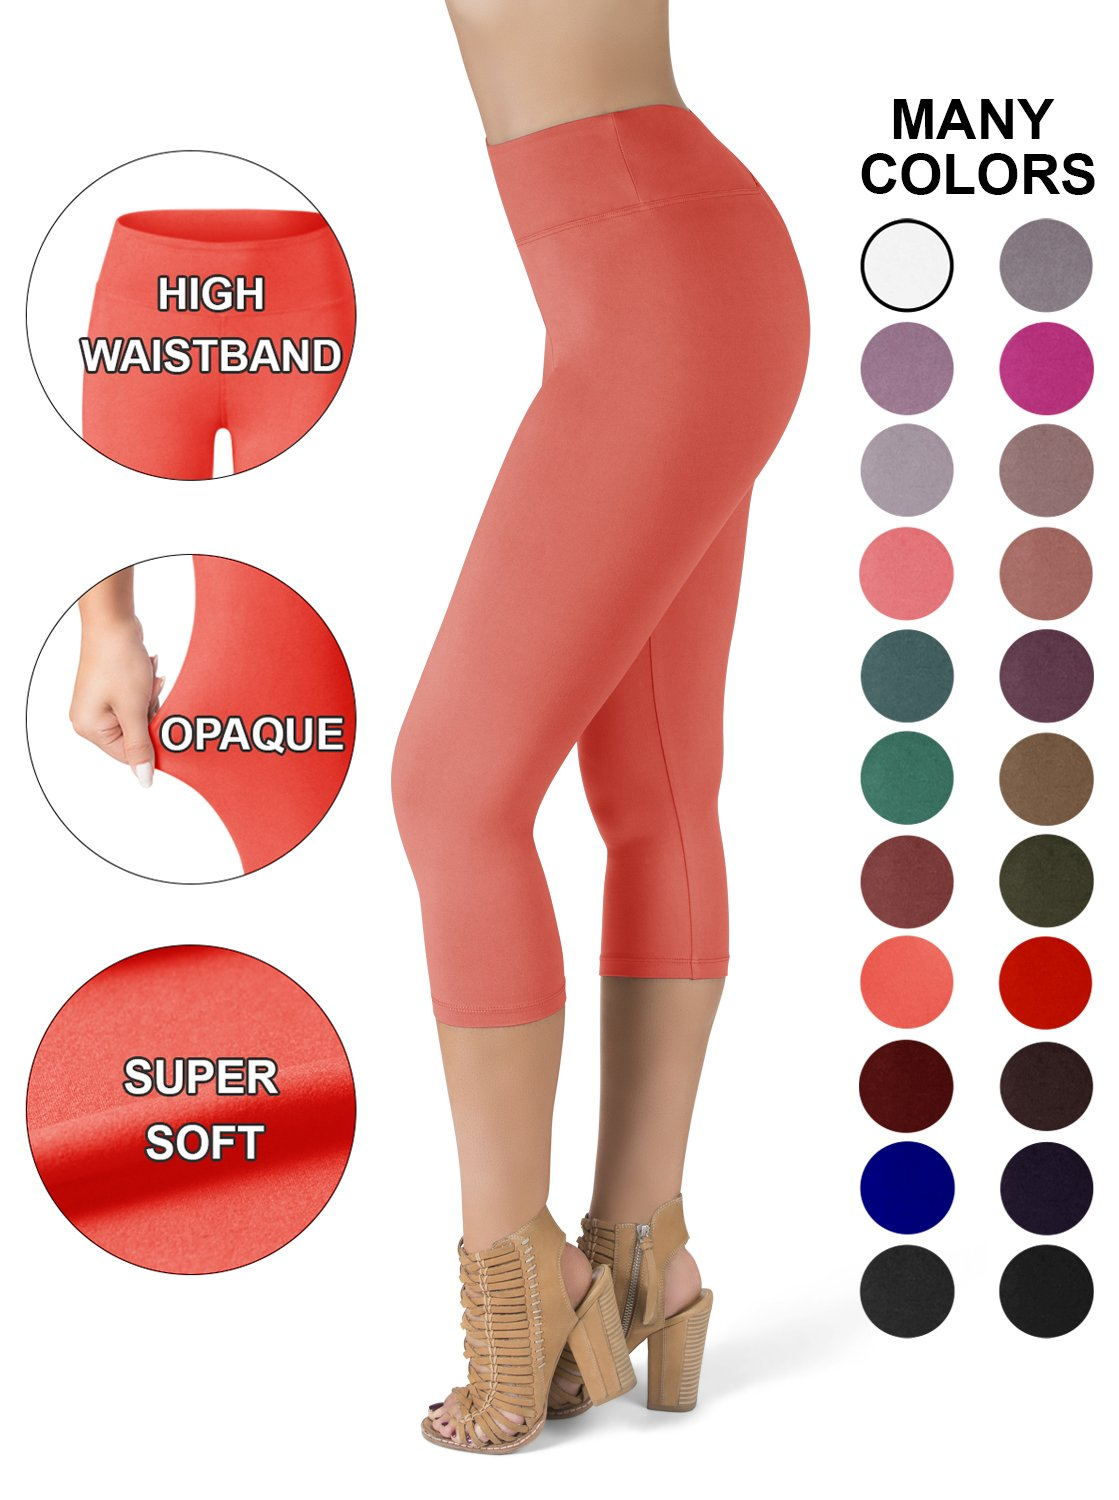 SATINA High Waisted Super Soft Capri Leggings - 20 Colors - Reg & Plus Size (One Size, Neon Coral)